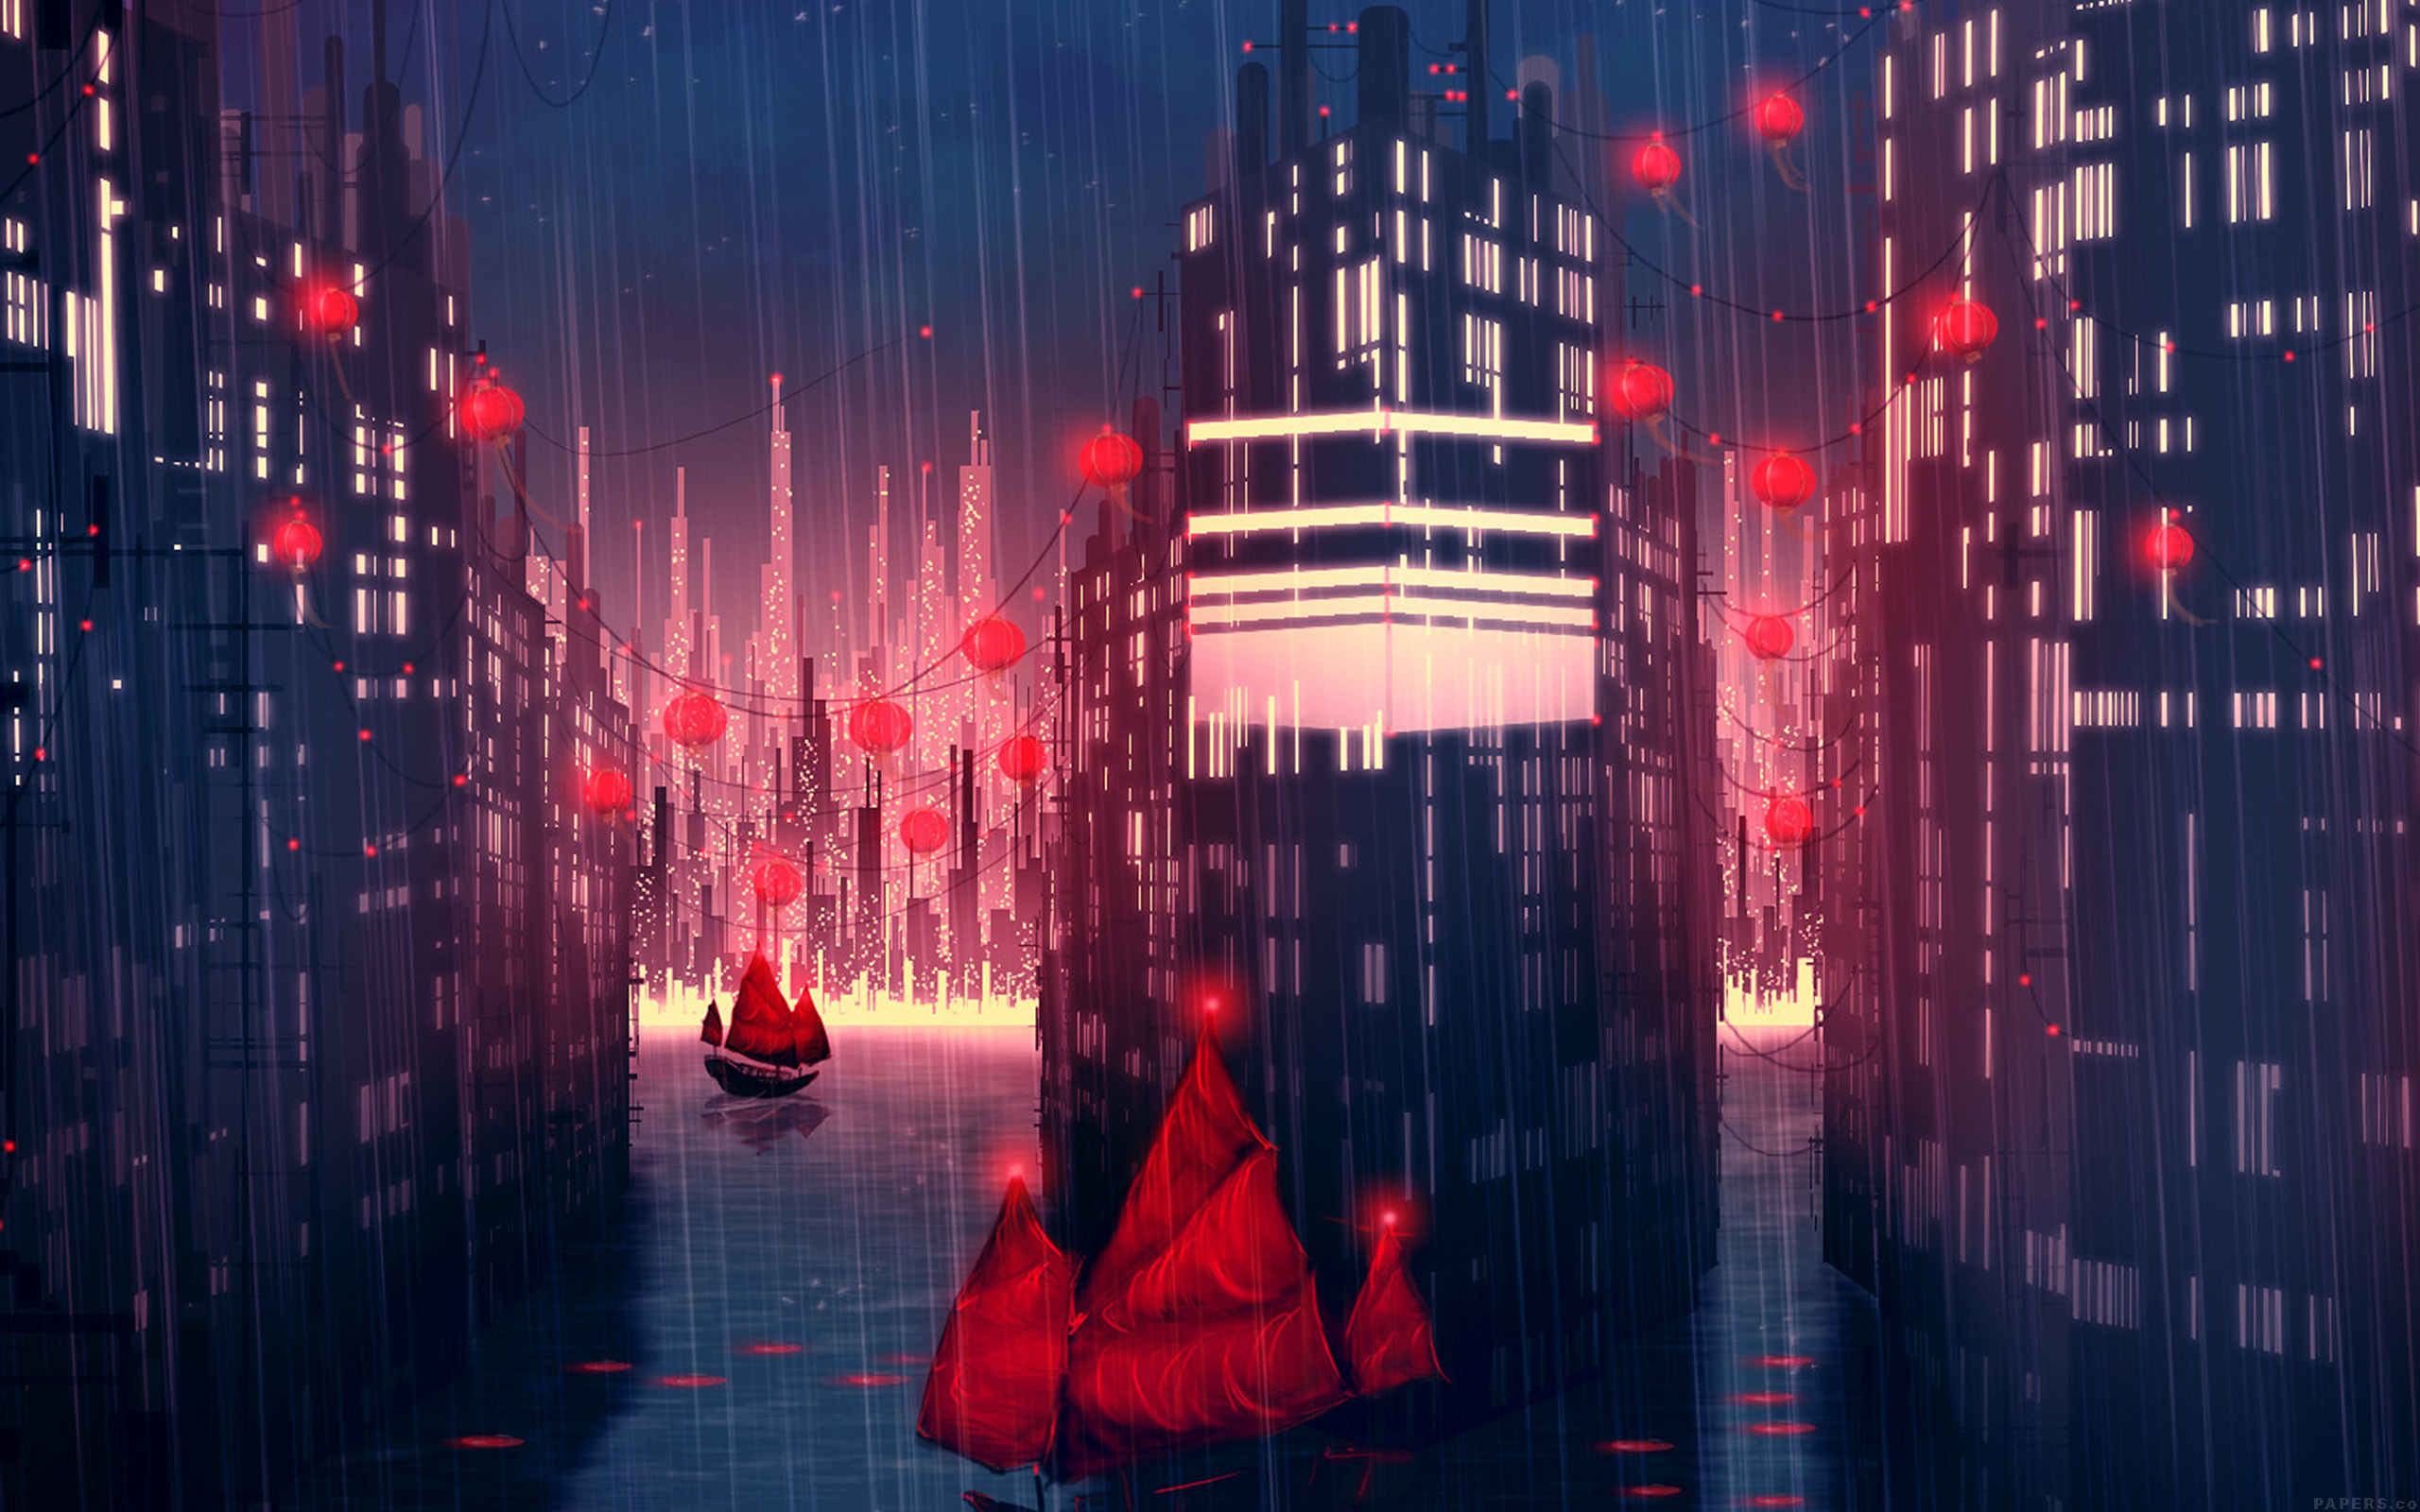 3840 x 2160 - Anime rain wallpaper ...